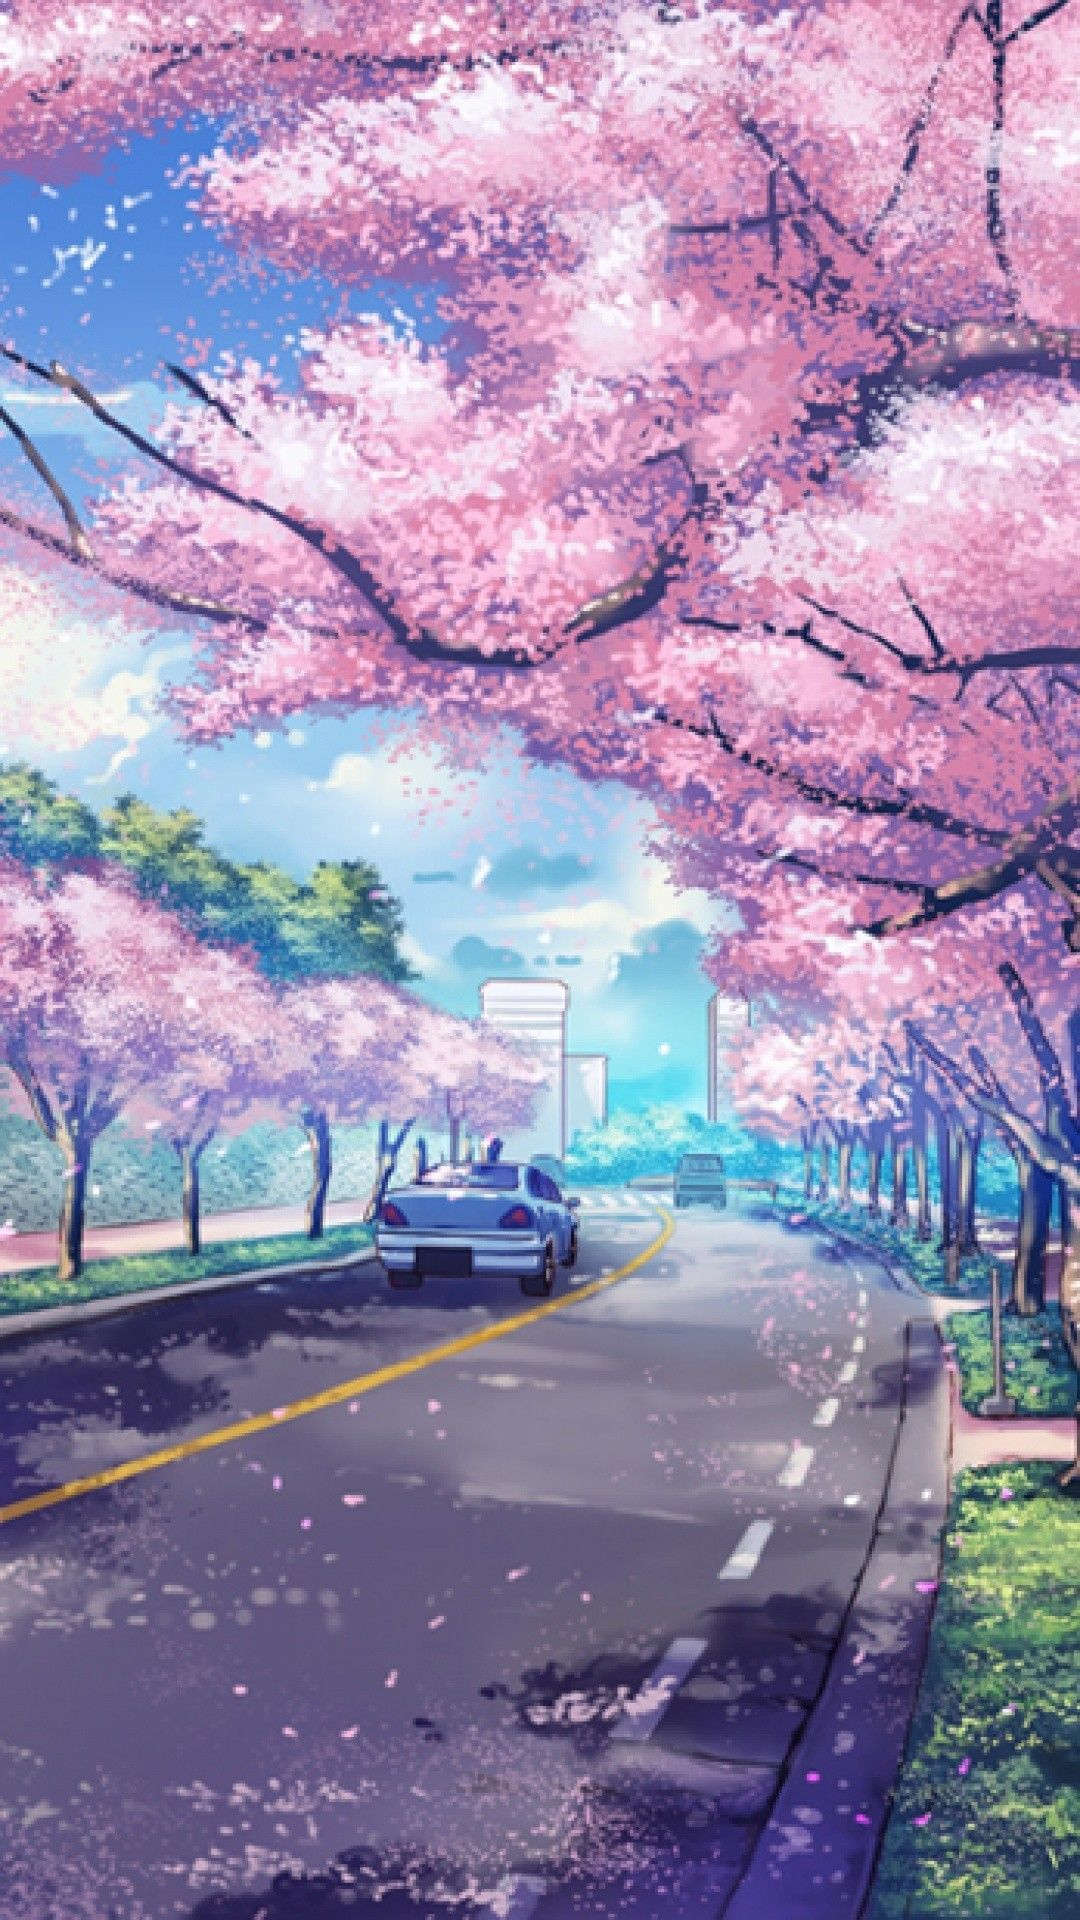 6845 Anime Scenery Wallpaper Background Picture Android Iphone Hd Wallpaper Background Download Hd Wallpapers Desktop Background Android Iphone 1080p 4k 1080x1920 2021